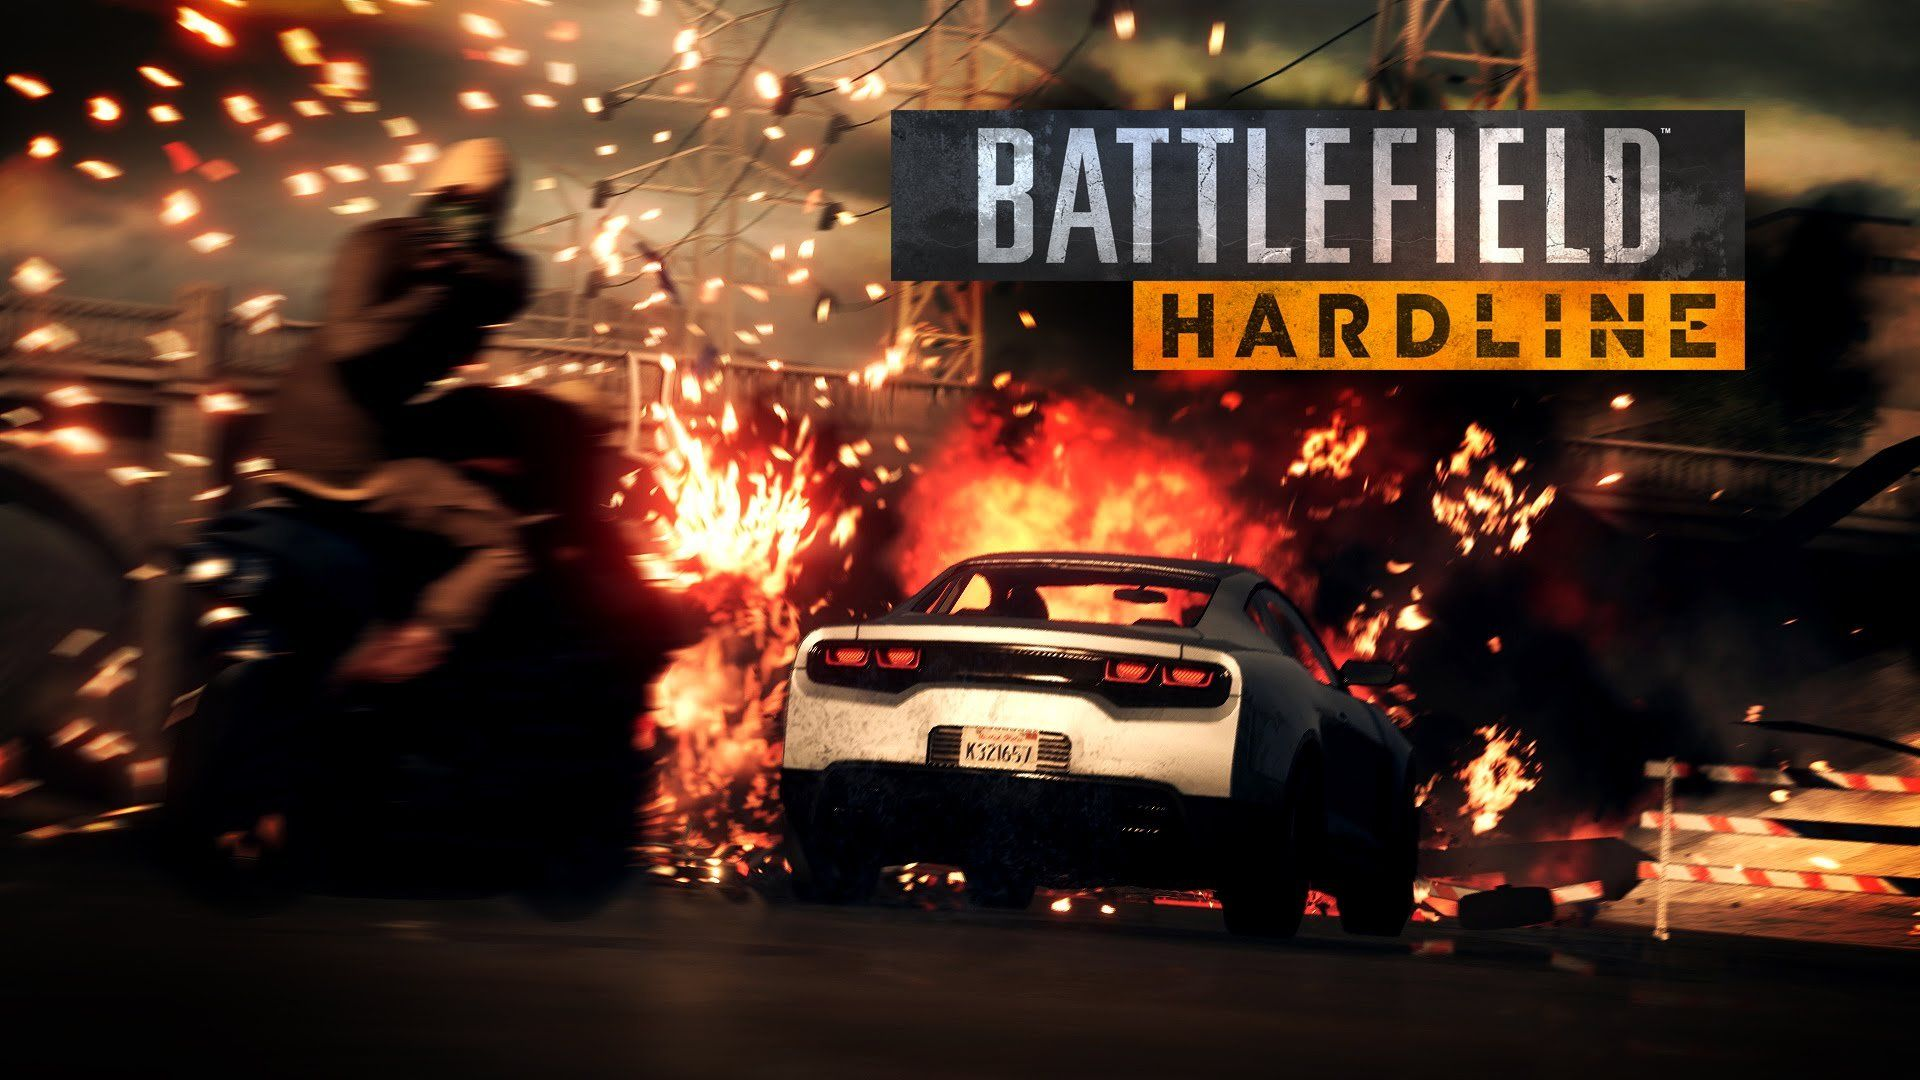 Battlefield Hardline Wallpapers K HD Desktop Backgrounds Phone 1920x1080 Wallpaper 49